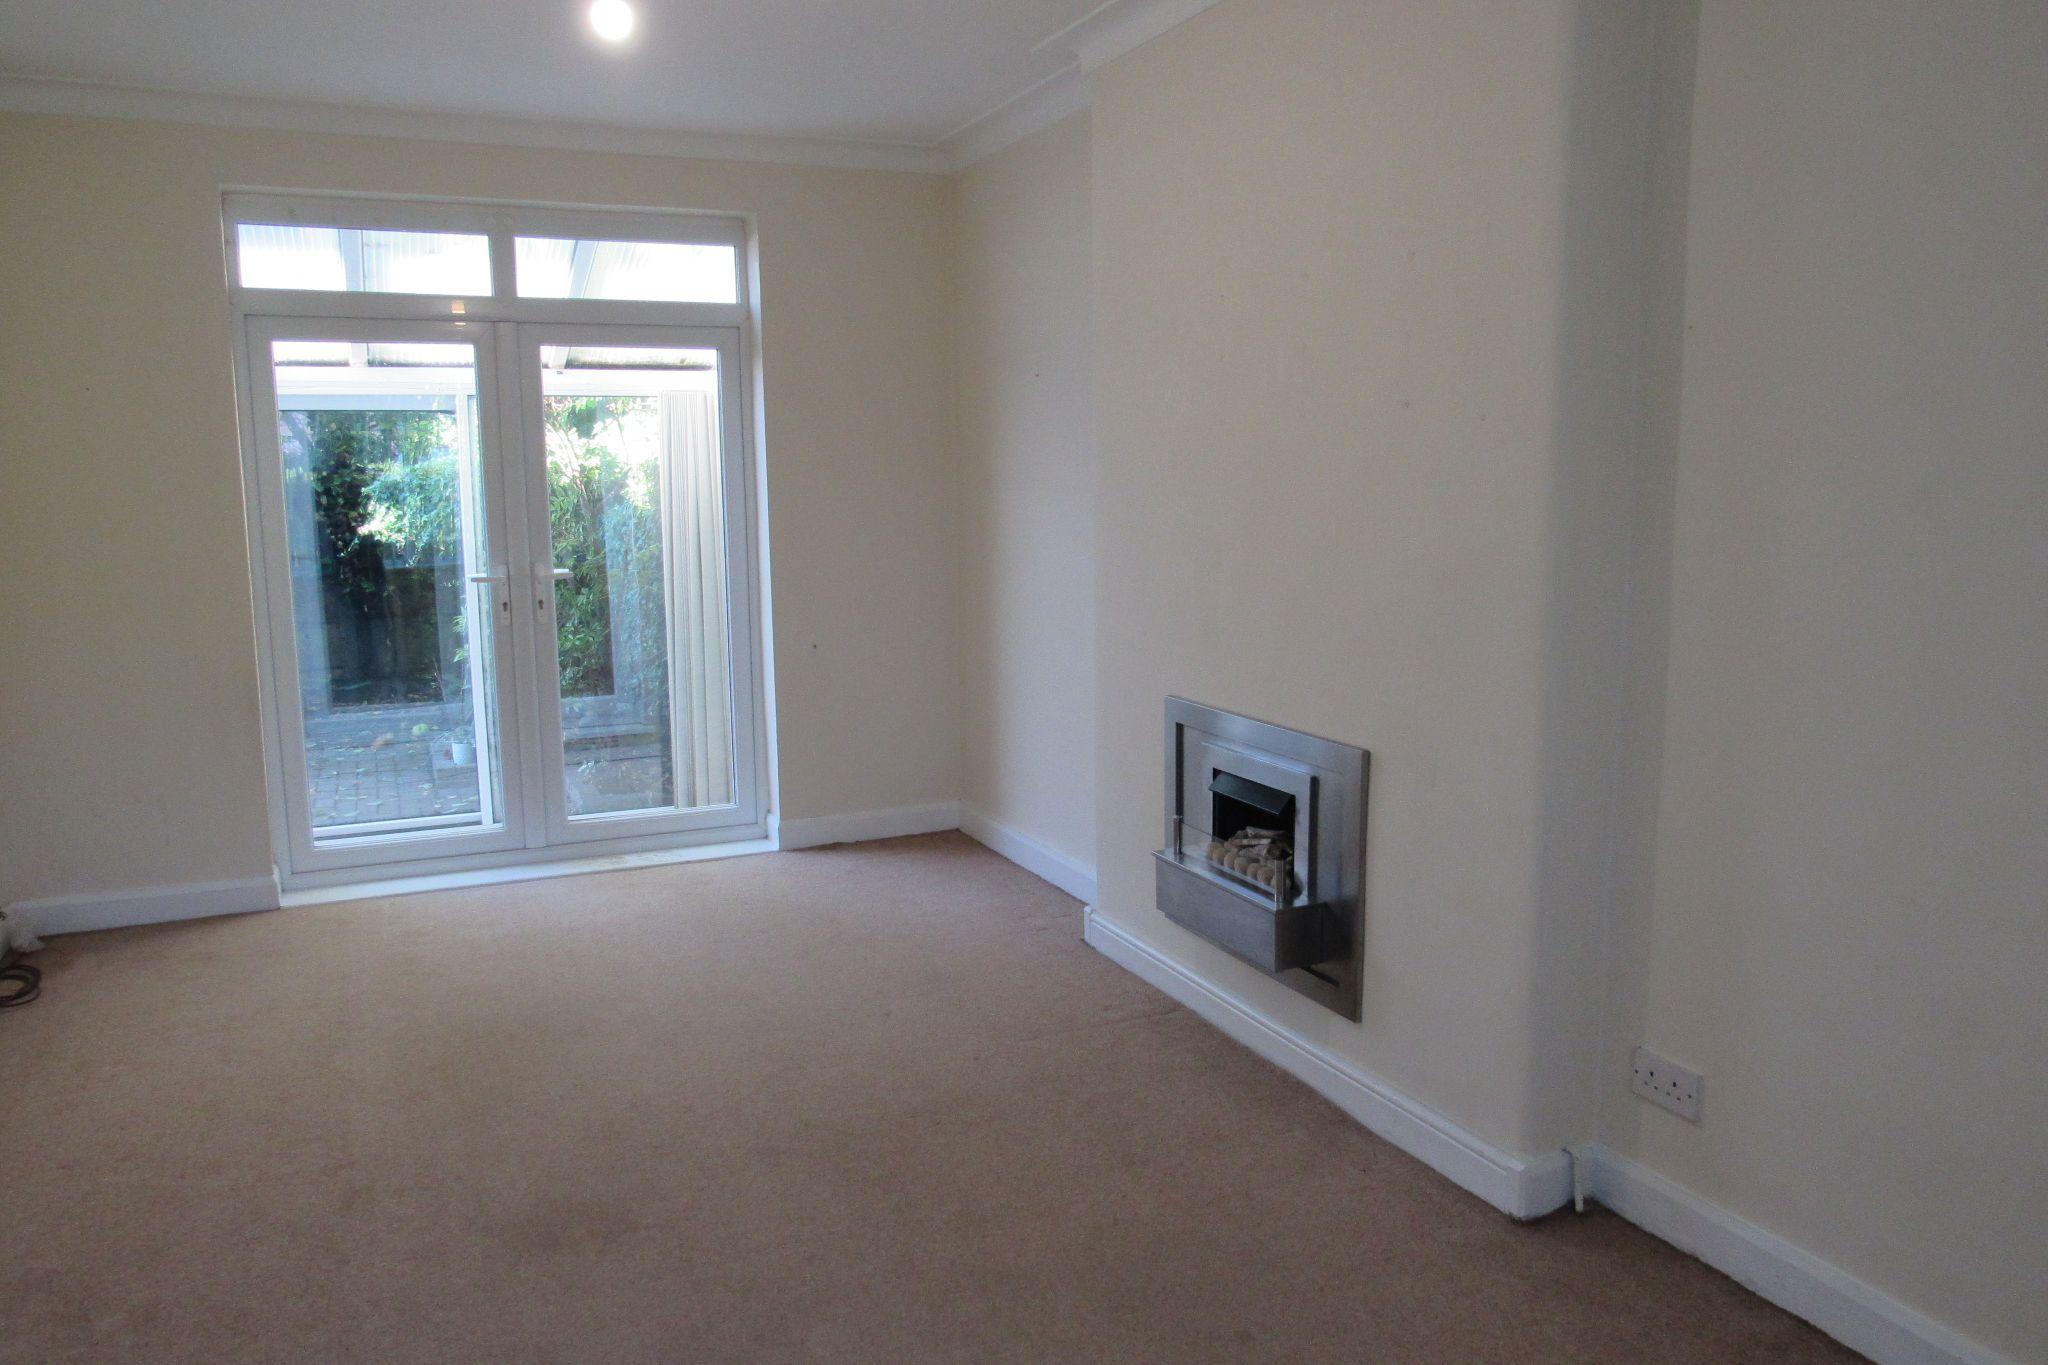 3 bedroom semi-detached house For Sale in Manchester - Photograph 26.